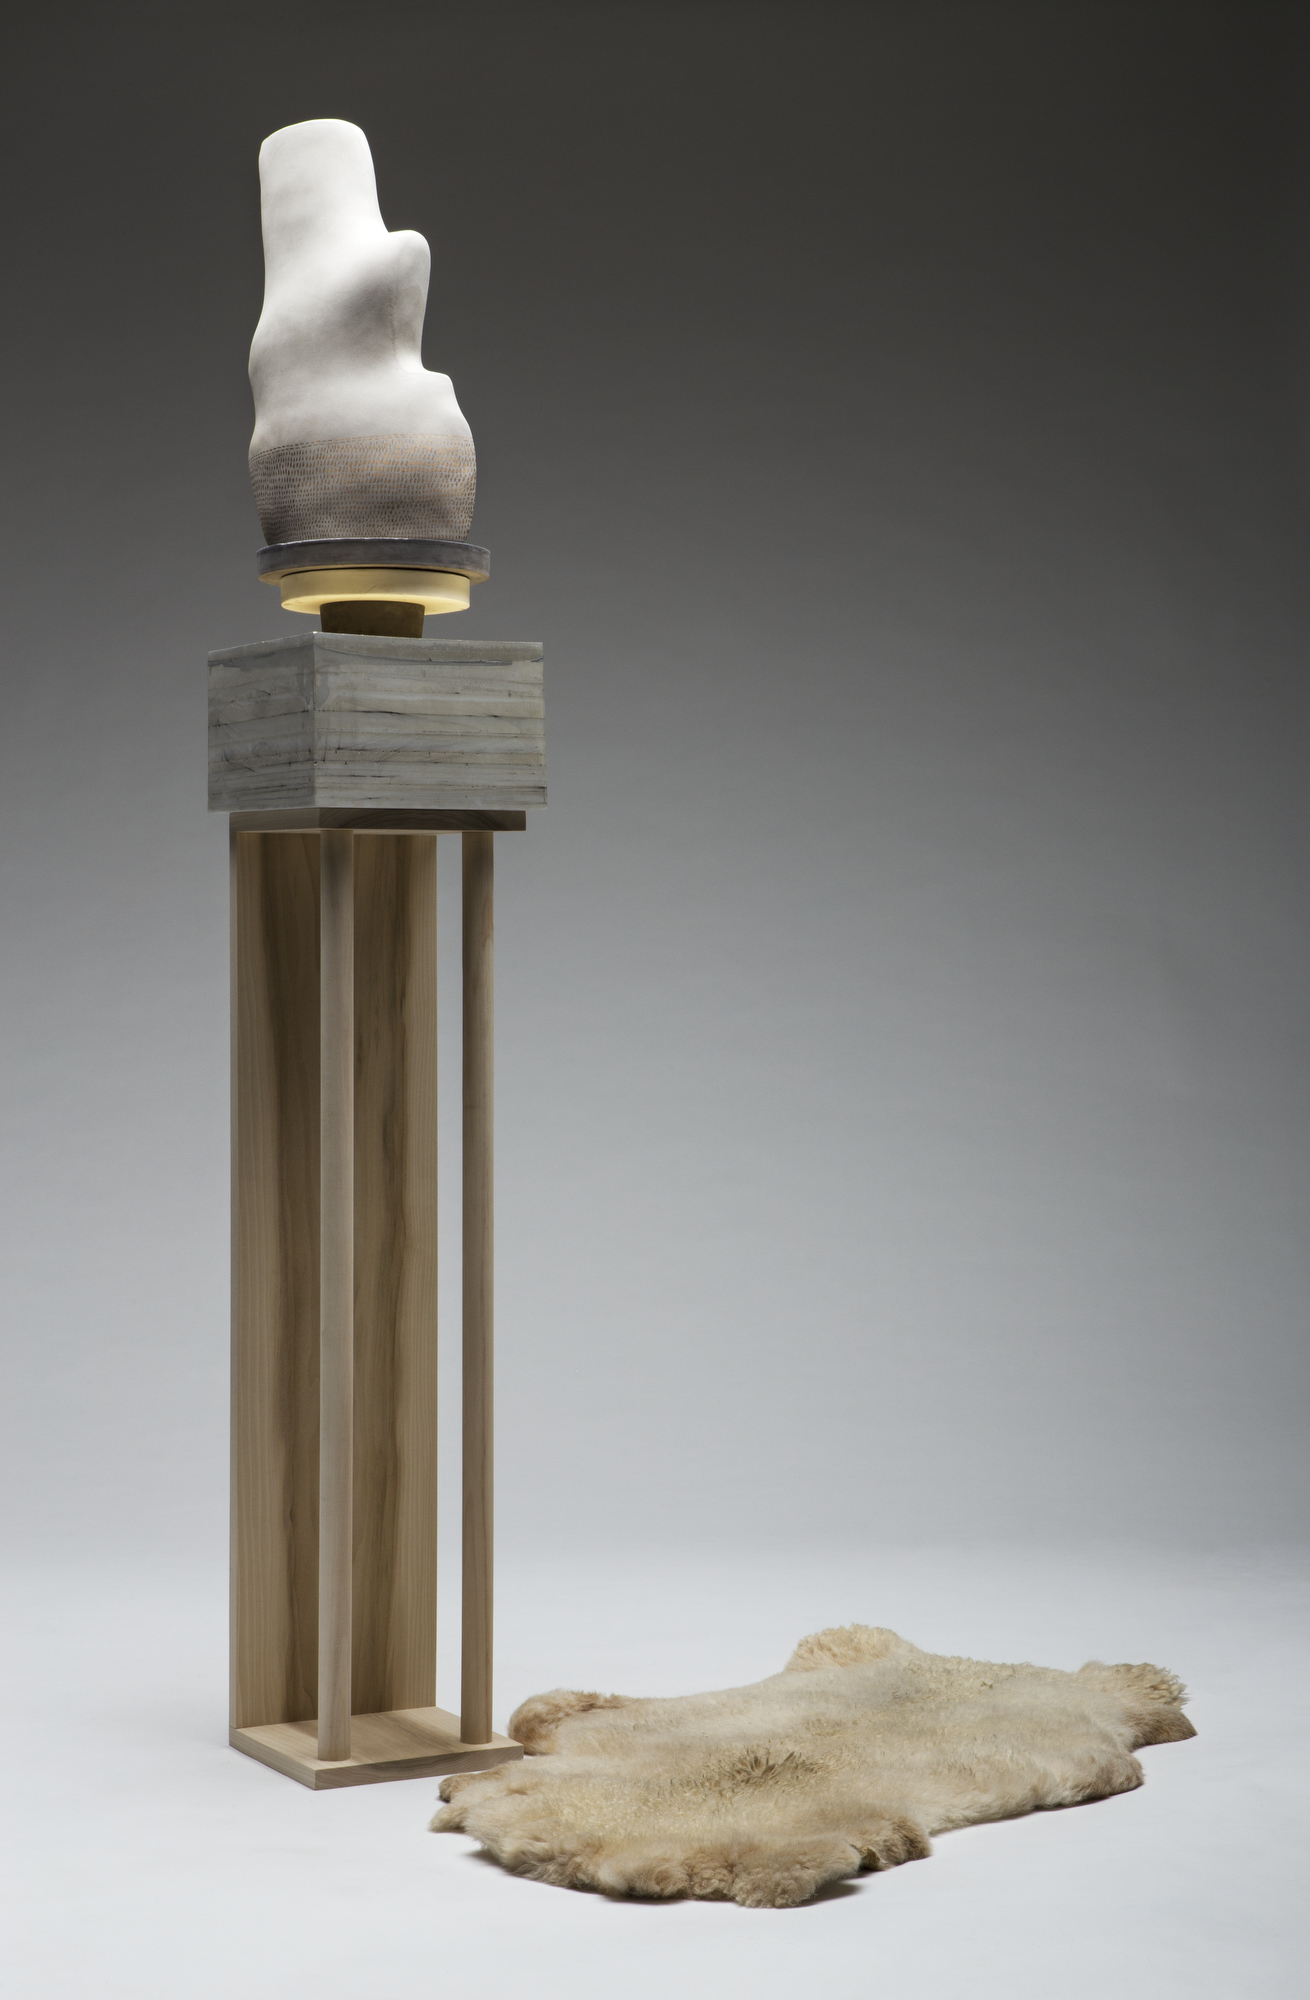 Christy Wittmer, Meridian, 2016, ceramic, cement, wood, gold leaf, gold luster, sheep skin. Courtesy of the artist.